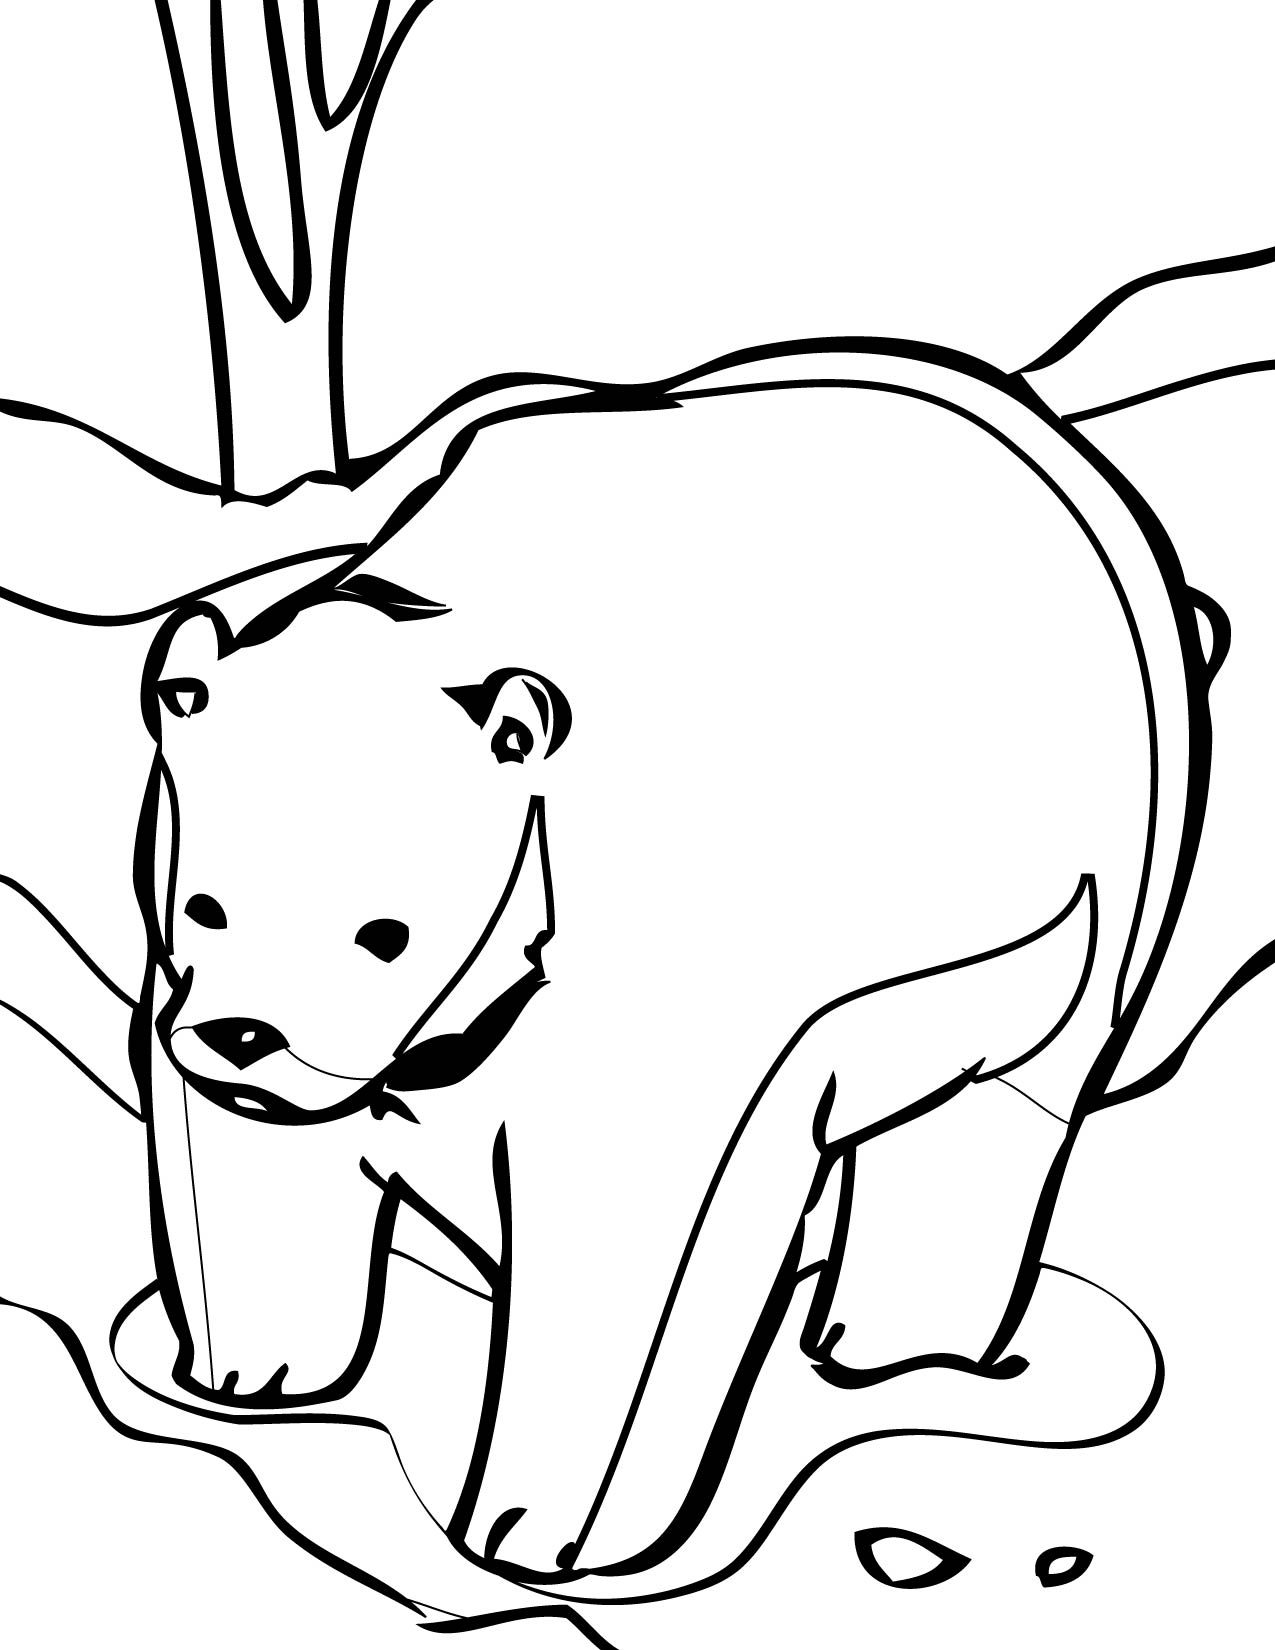 Coloring Pages | Animal Place - Part 4